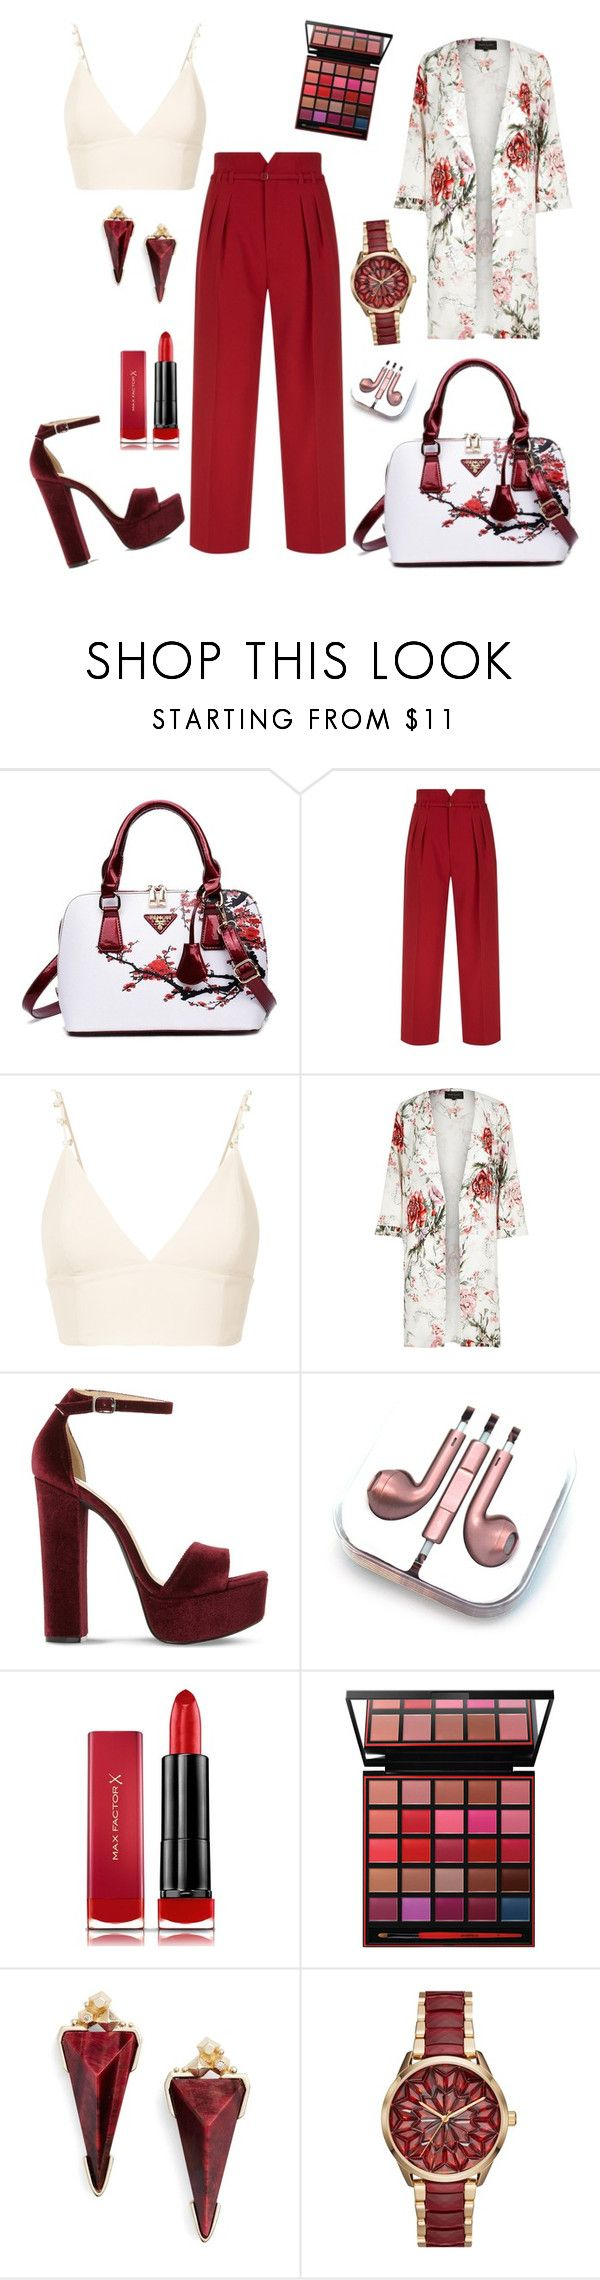 """Untitled #338"" by inesgenebra on Polyvore featuring beauty, RED Valentino, nk, River Island, Steve Madden, PhunkeeTree, Max Factor, Smashbox, Kendra Scott and Michael Kors"